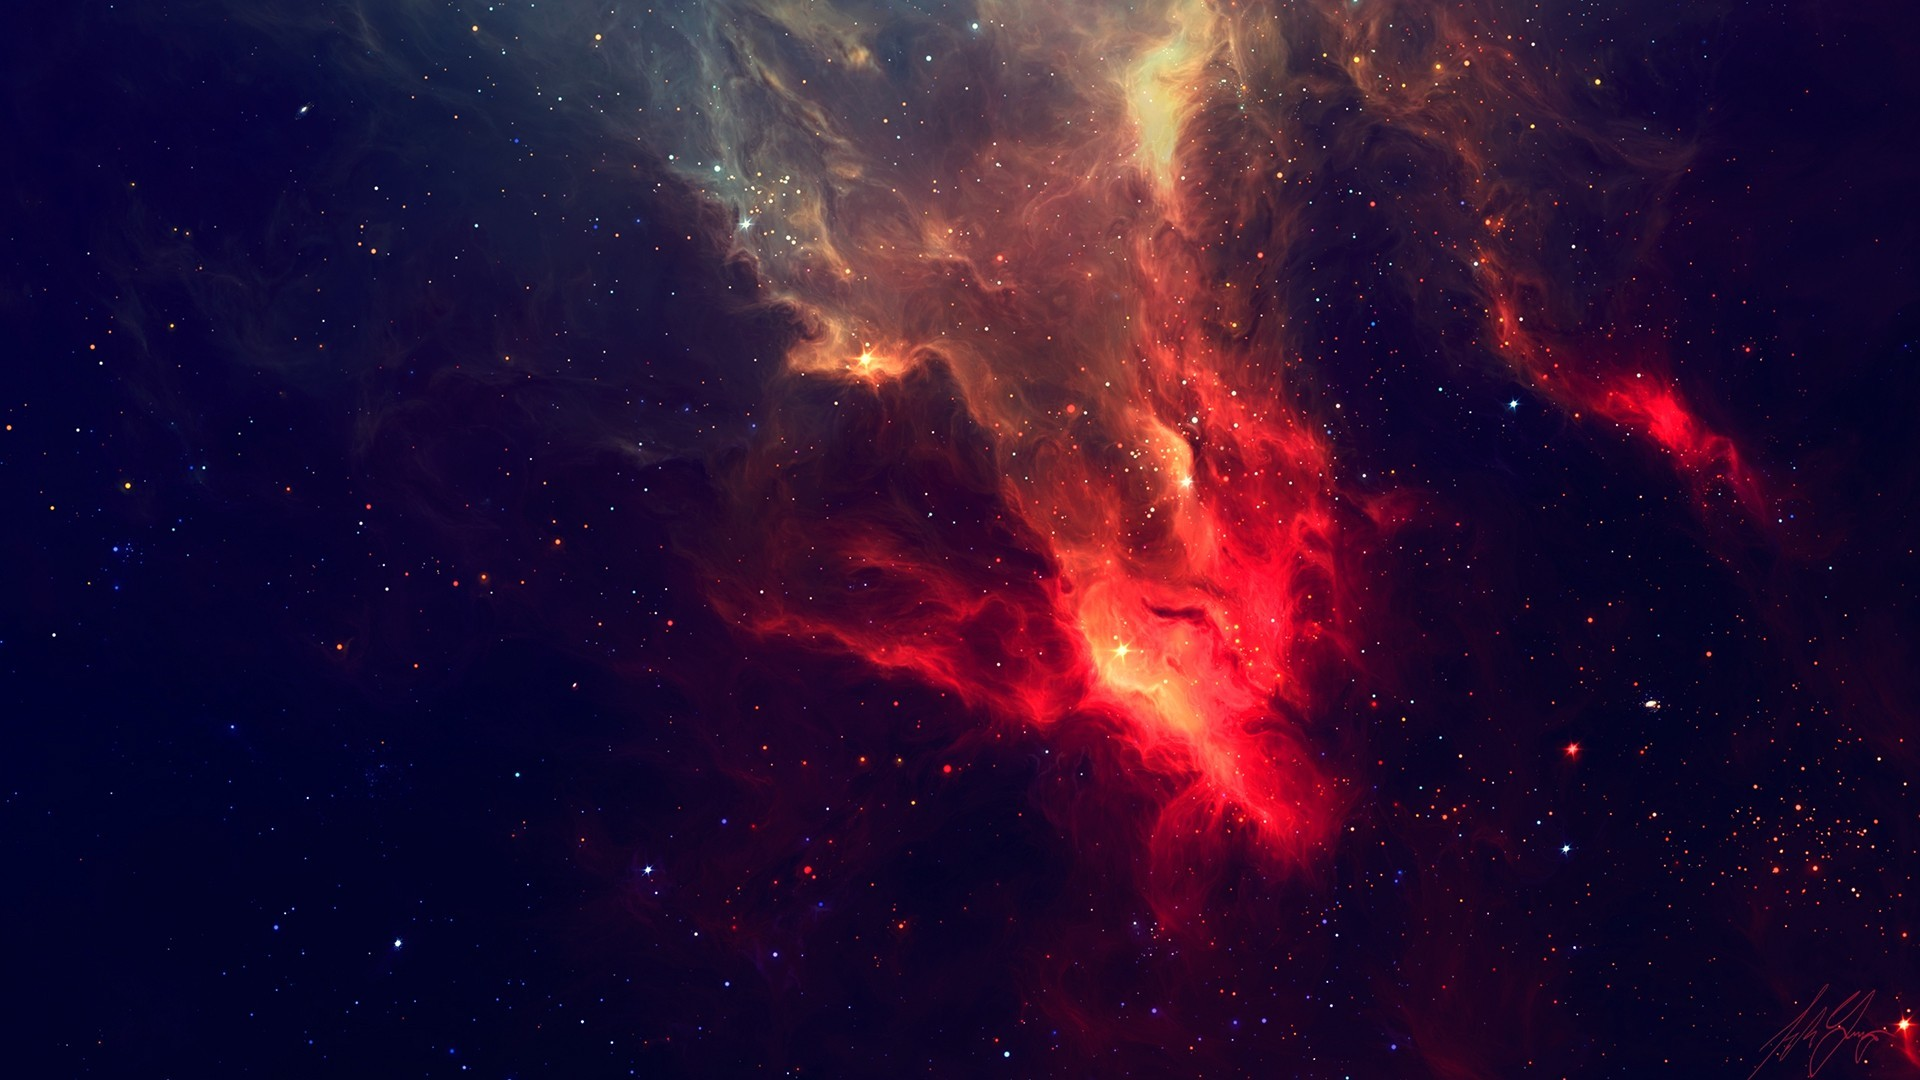 1920x1080 Galaxy+Tumblr | Andromeda Galaxy Tumblr Resolution Wallpaper Pictures